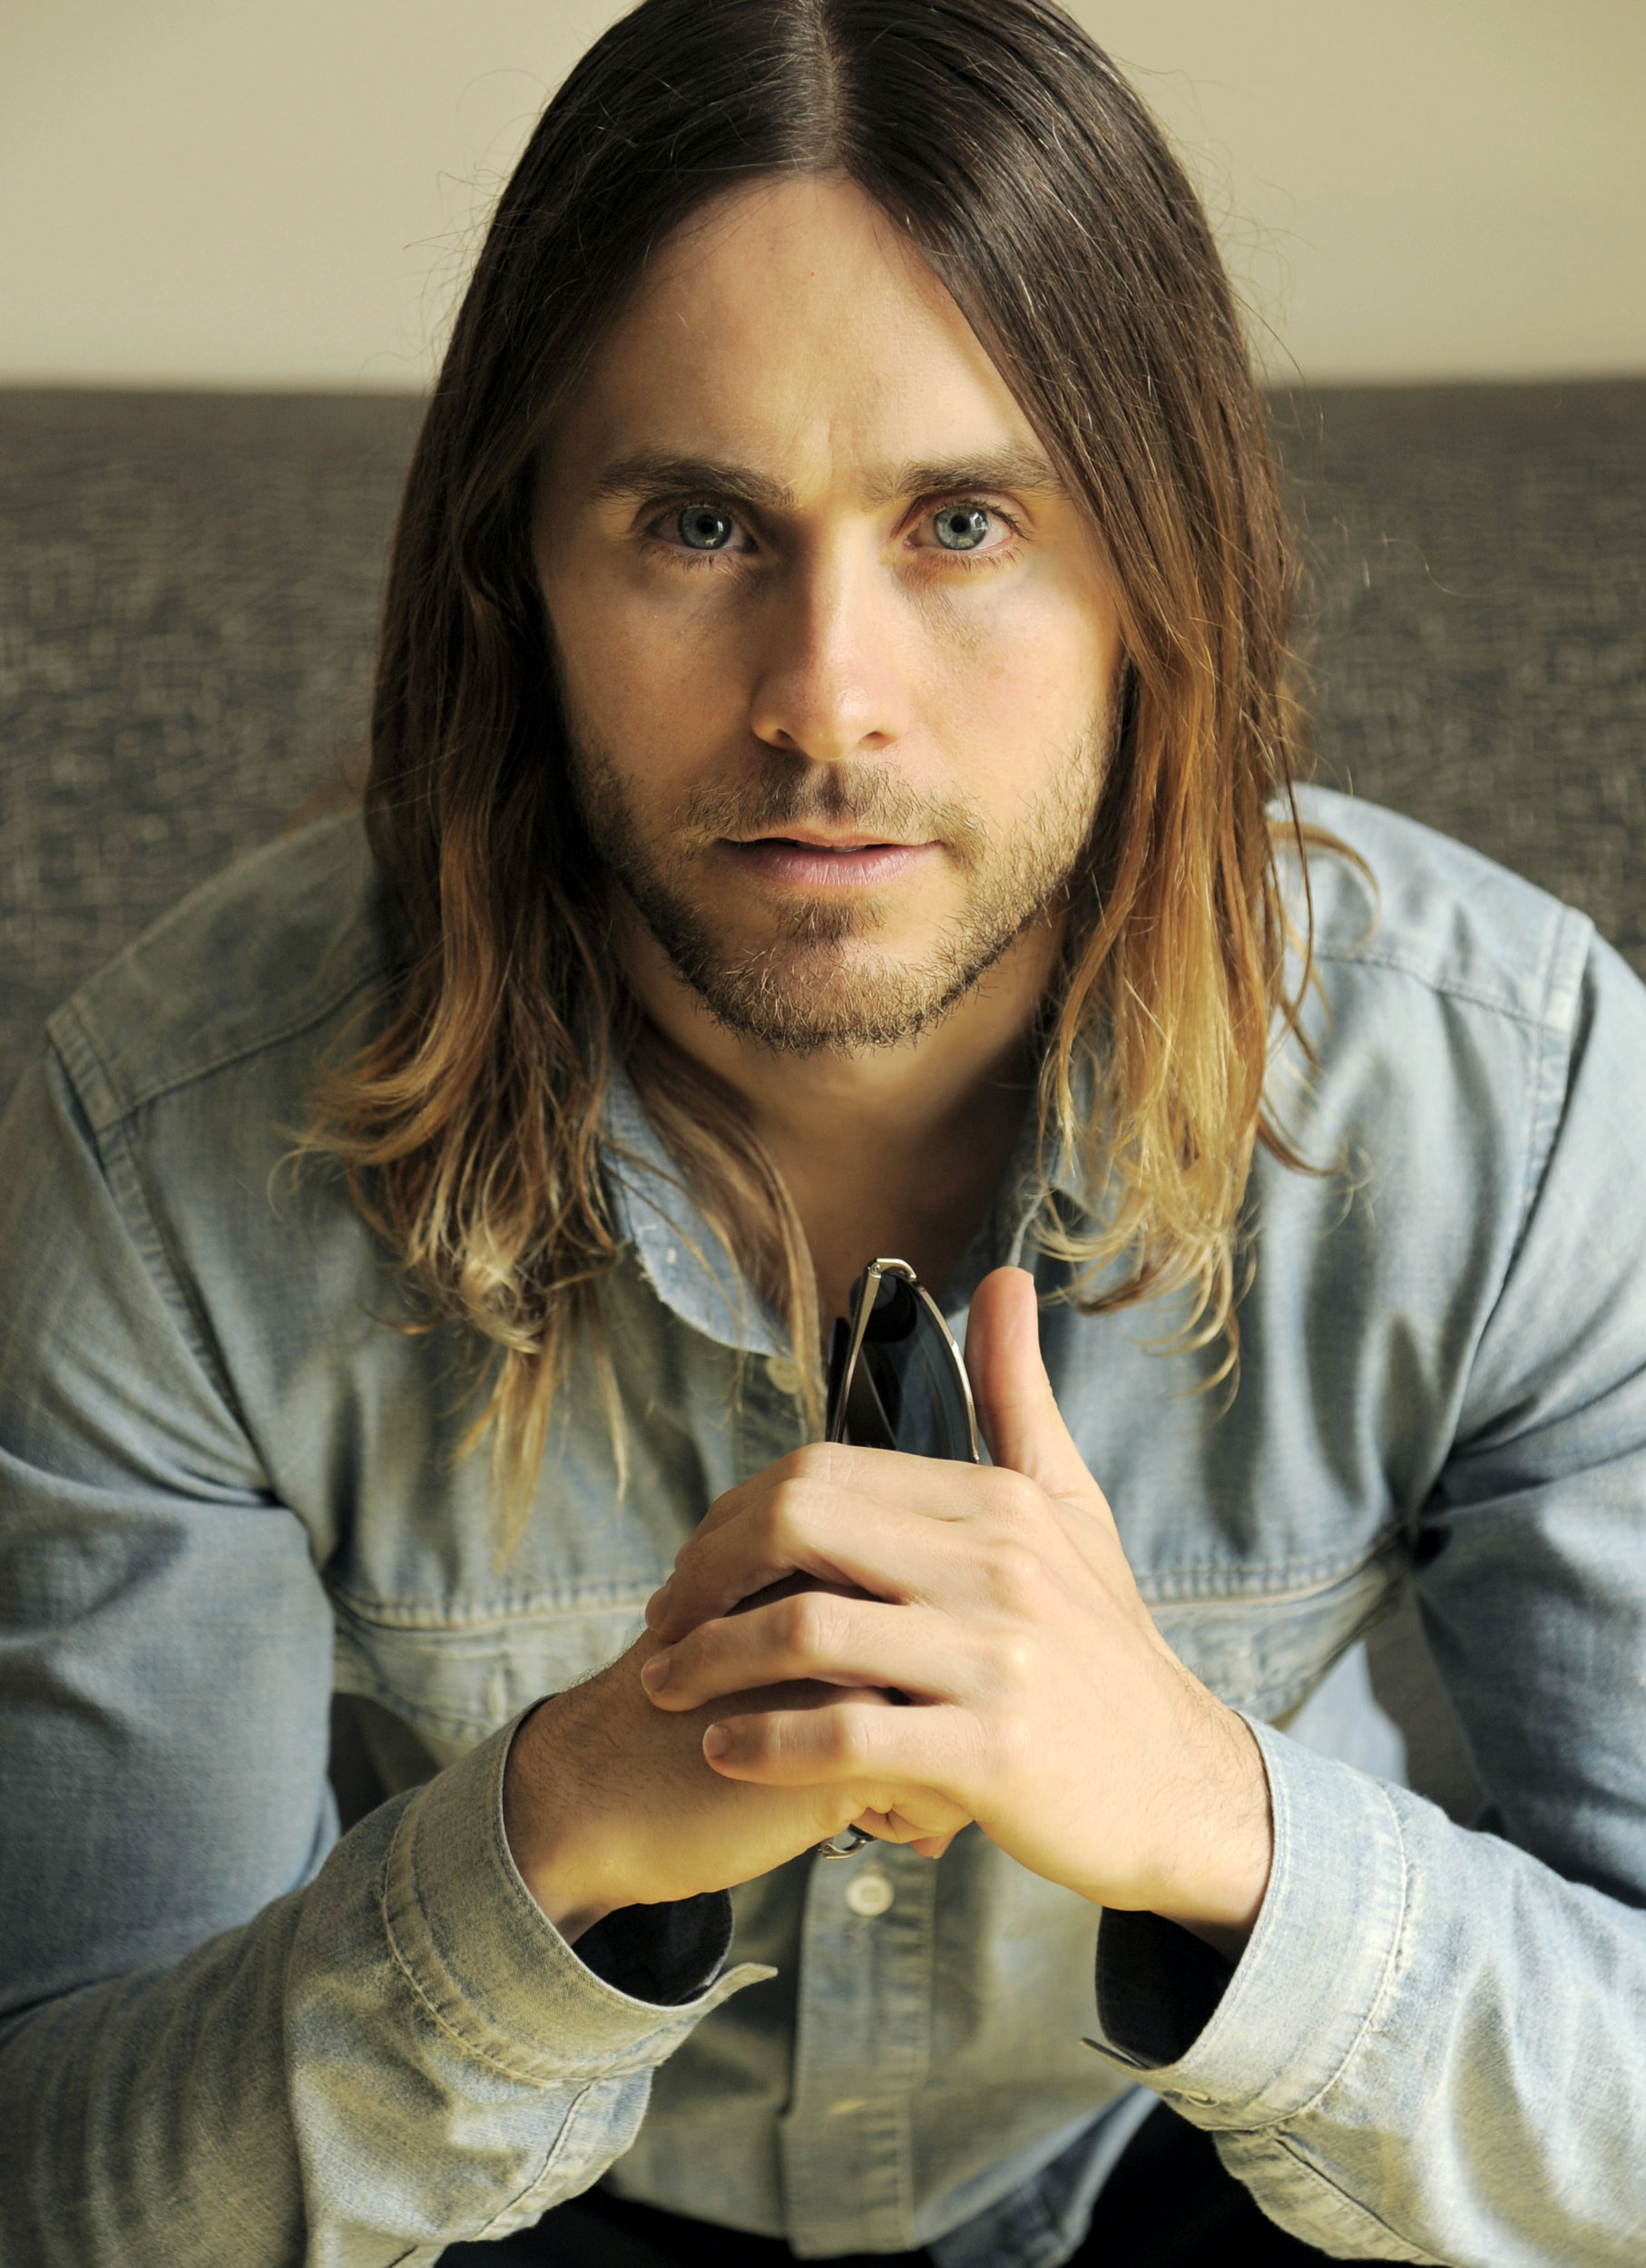 Jared Leto For Nylon Guys: 30 SECONDS TO MARS